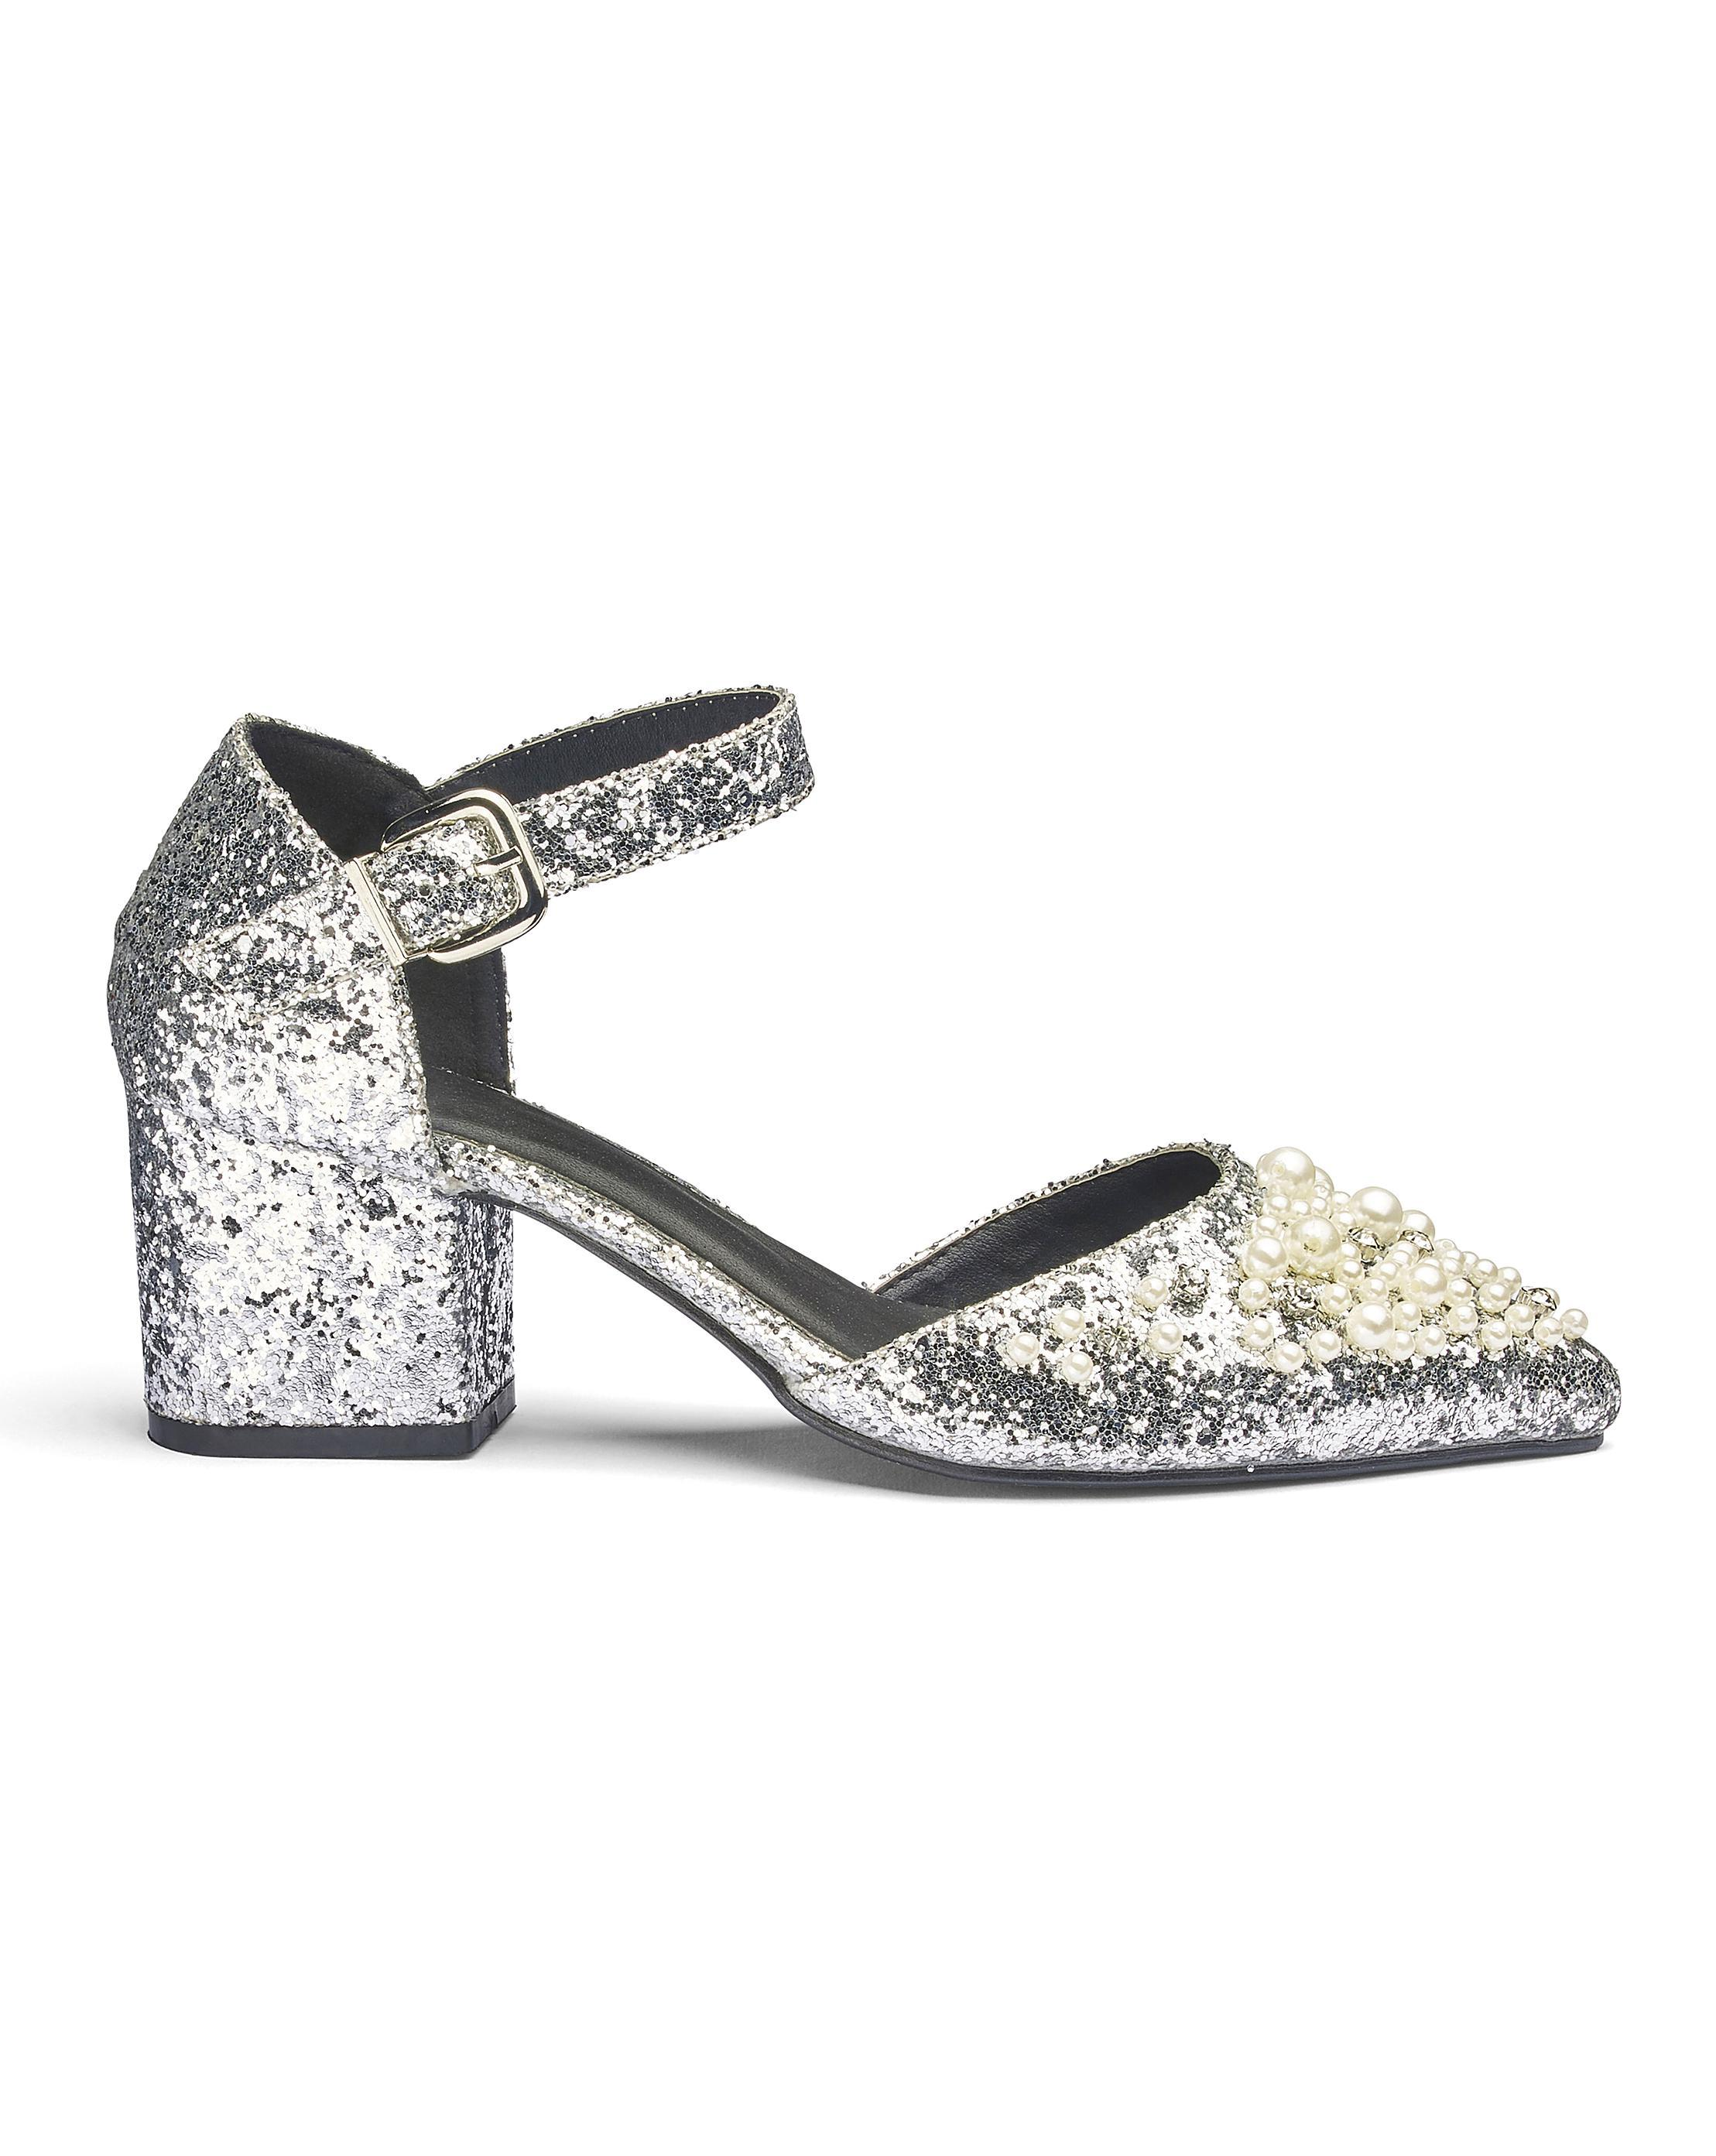 f49f4d16a Lyst - Simply Be Sole Diva Emma Embellished Heels in Metallic